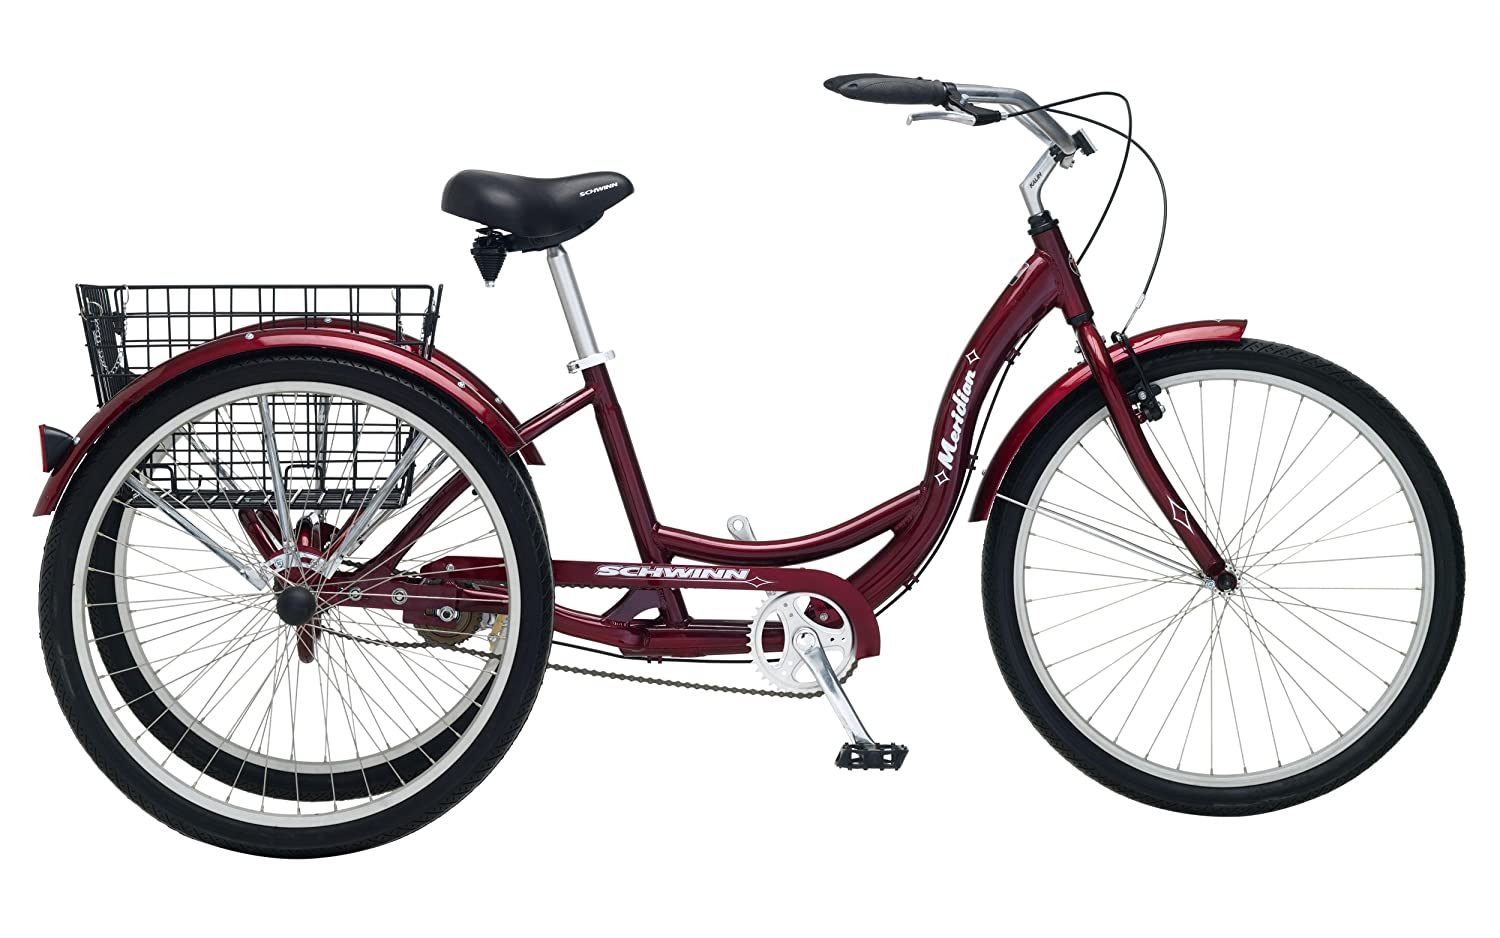 Schwinn Meridian Full-Size Adult Tricycle 26 wheel size Bike Trike